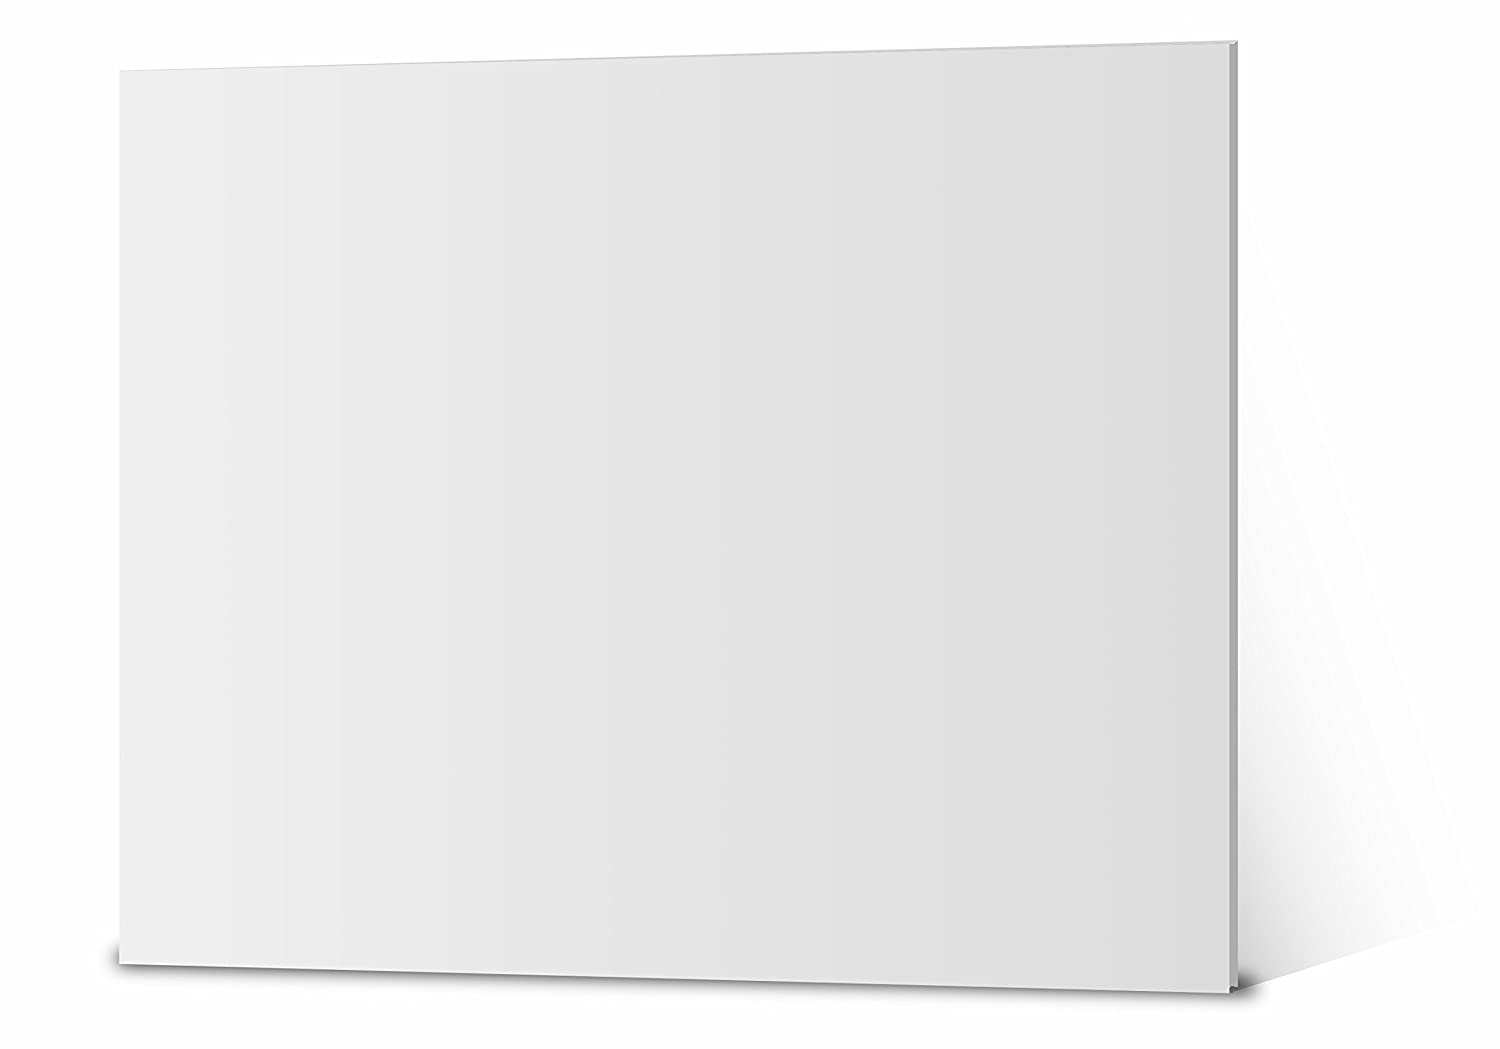 Elmer's Colored Foam Board, 20 x 30-Inch, 3/16-Inch Thick, White (950109) Elmer Products